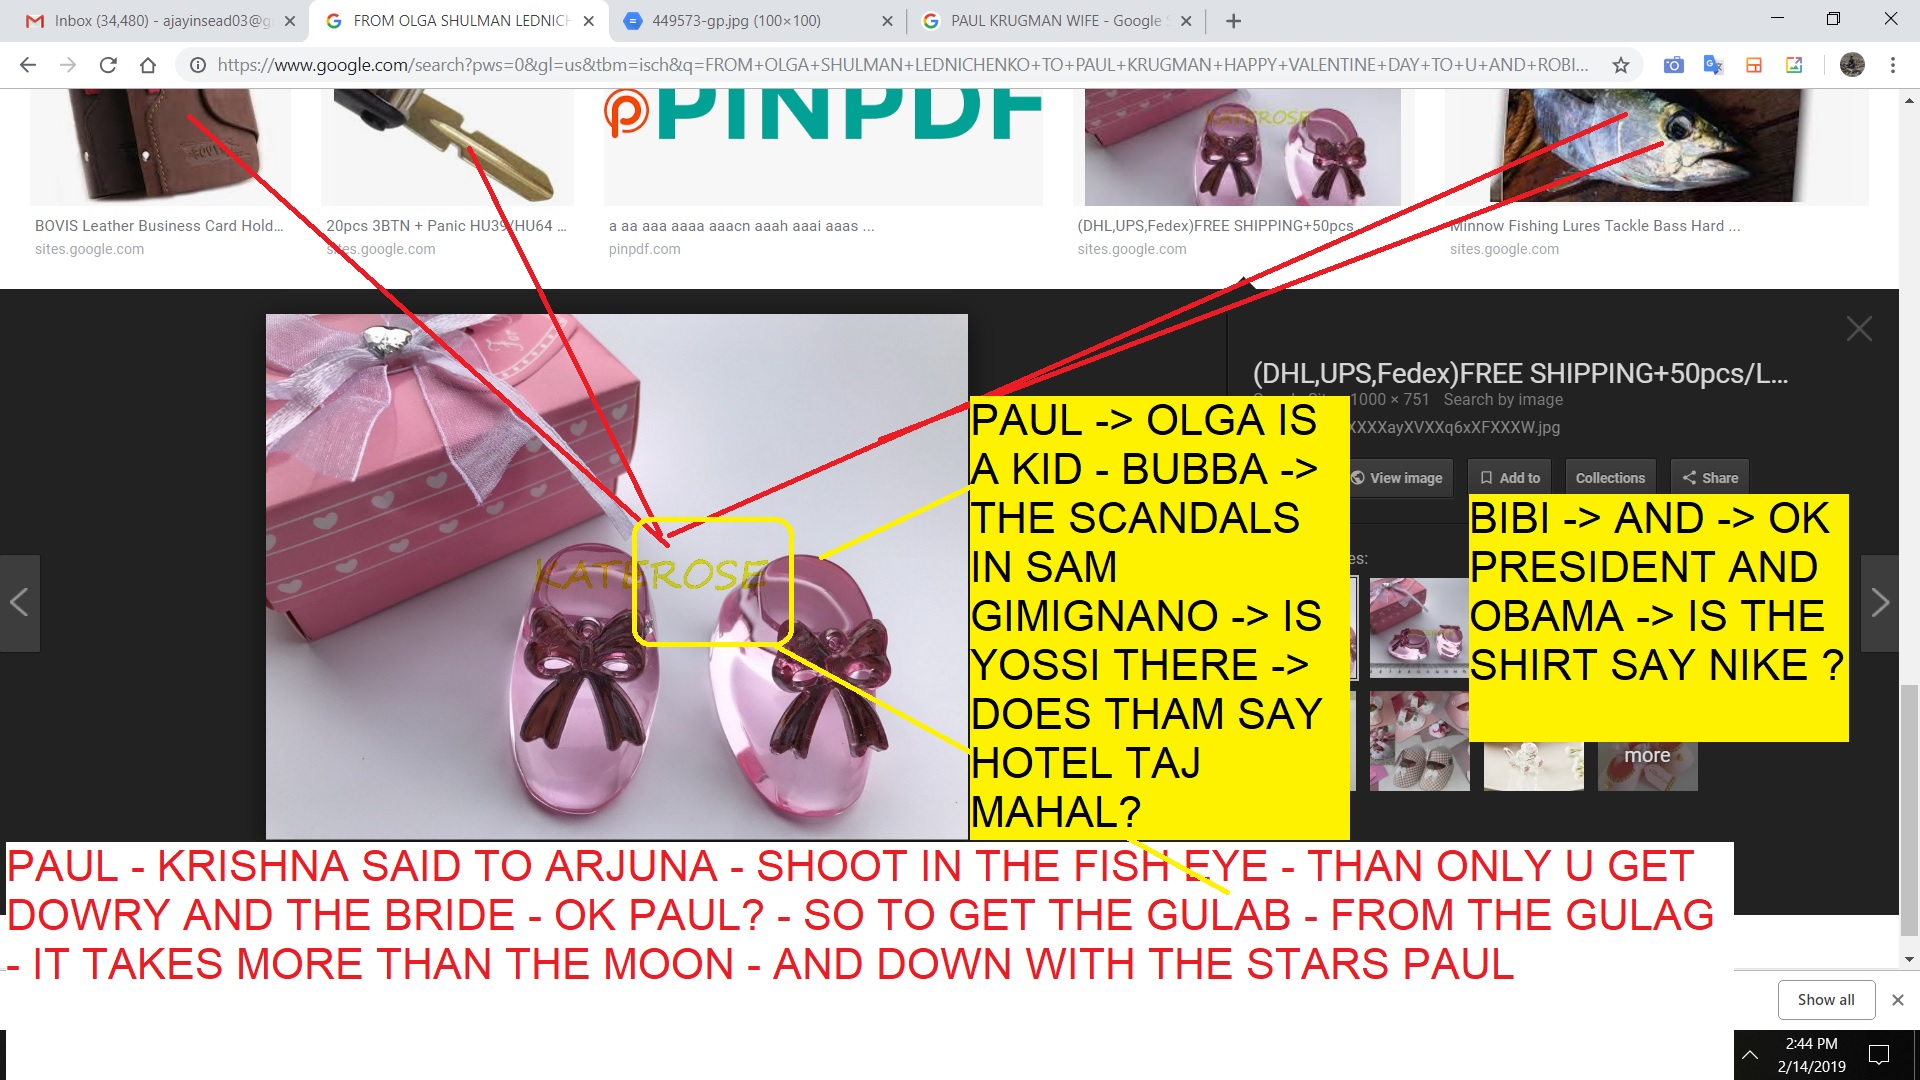 PAUL - KRISHNA SAID TO ARJUNA - SHOOT IN THE FISH EYE - THAN ONLY U GET DOWRY AND THE BRIDE - OK PAUL - SO TO GET THE GULAB - FROM THE GULAG - IT TAKES MORE THAN THE MOON